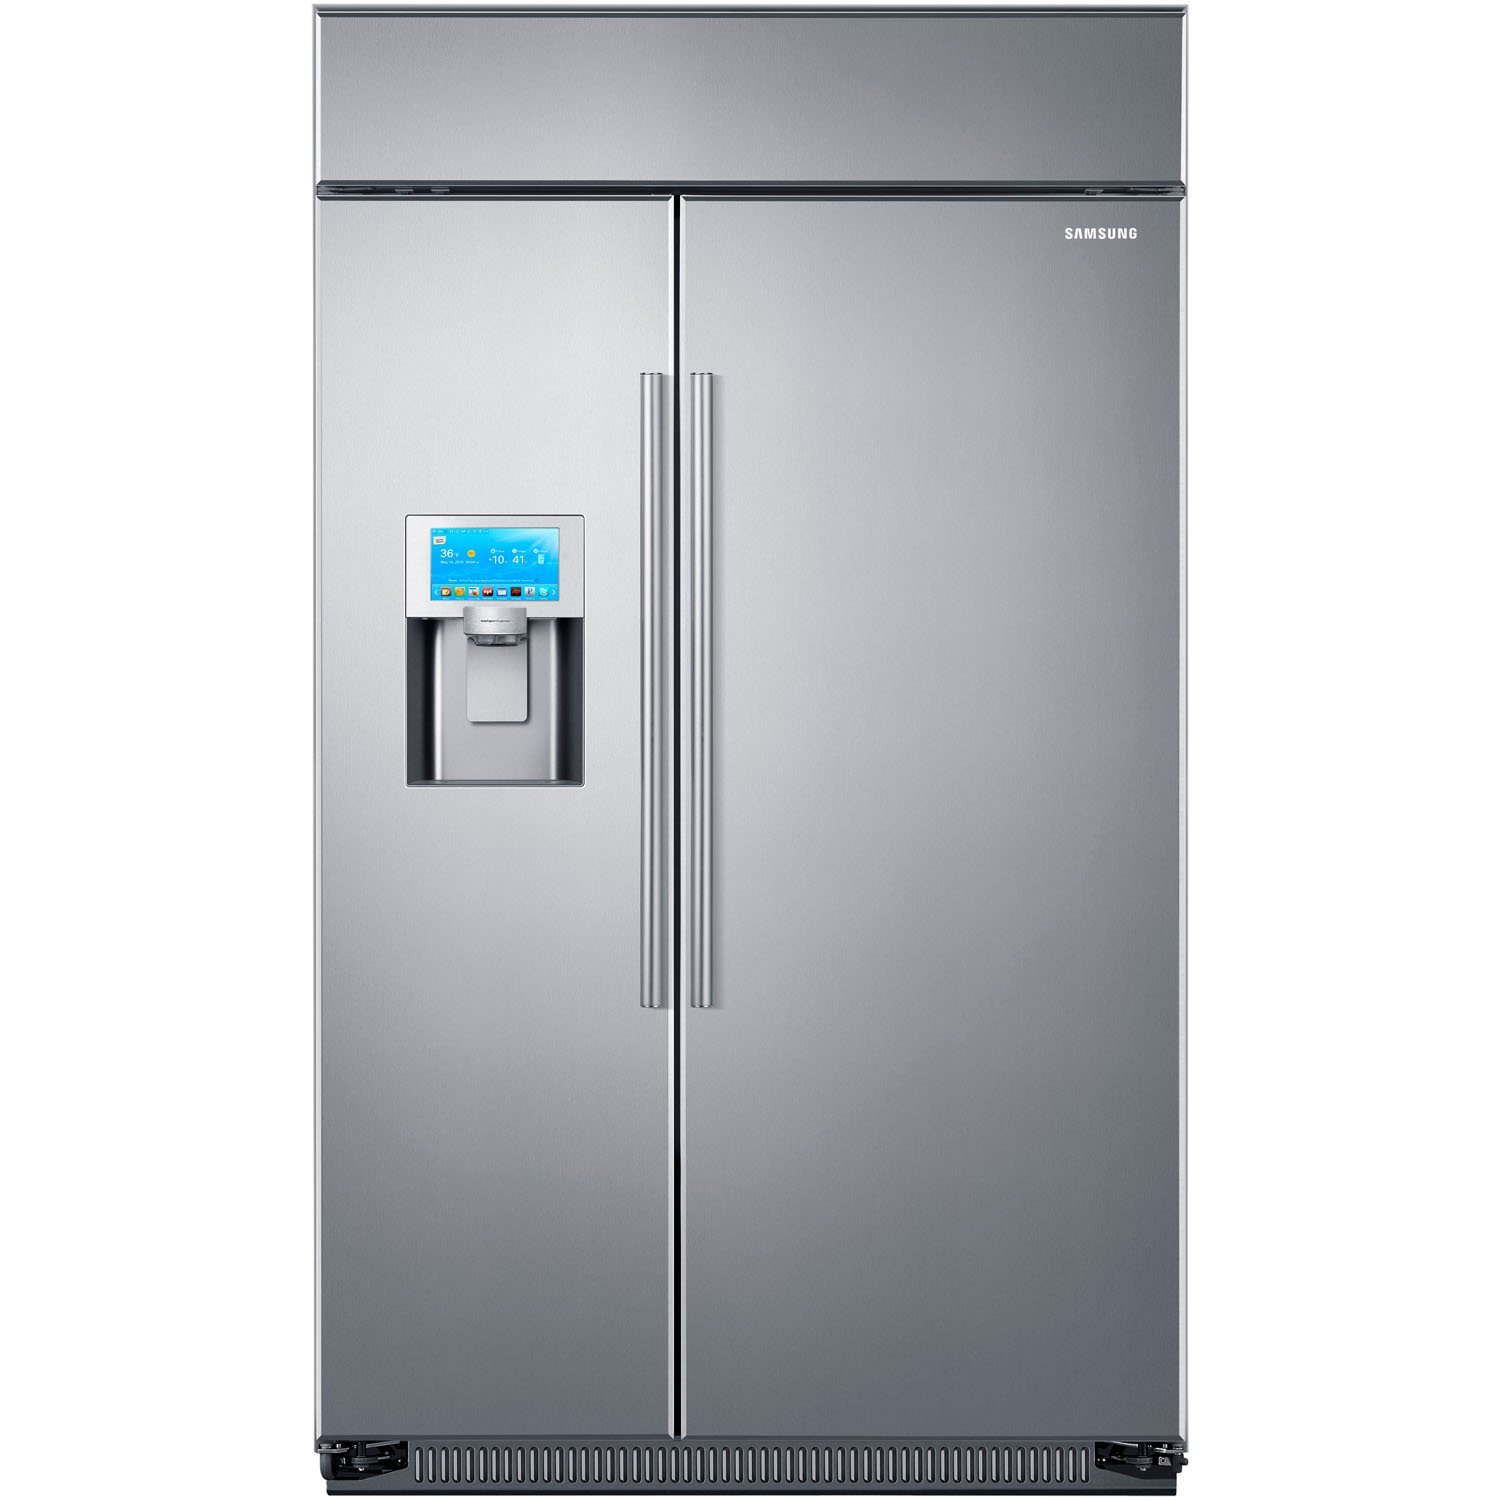 french models shelves fridge kenmore dryer range customer parts care size of kitchenaid freezer replacement shelf refrigerator bin door appliances stunning gas elite full availability samsung kitchen stove doors hotpoint